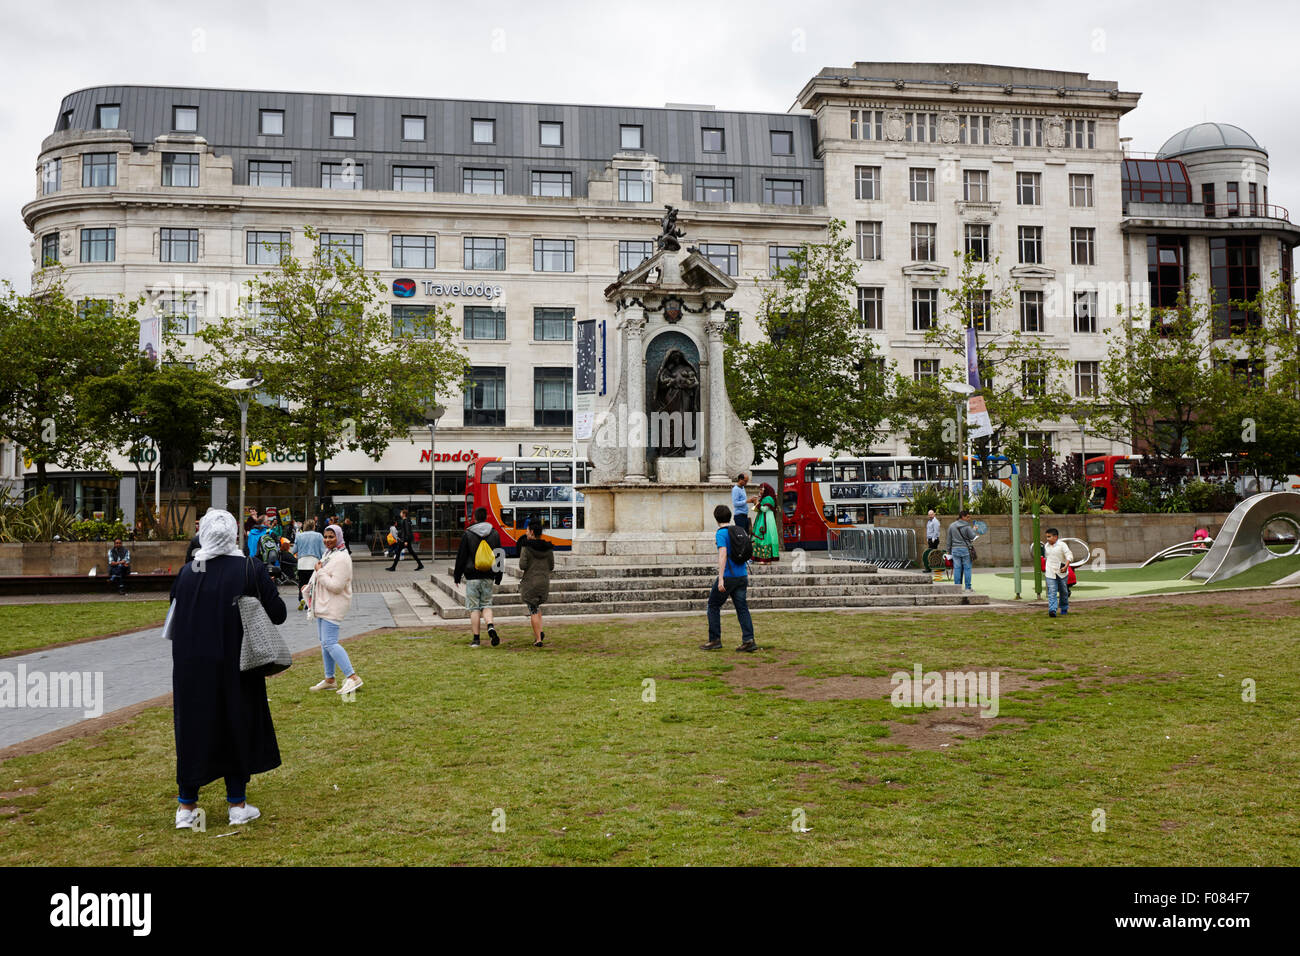 people in Piccadilly gardens Manchester England UK - Stock Image